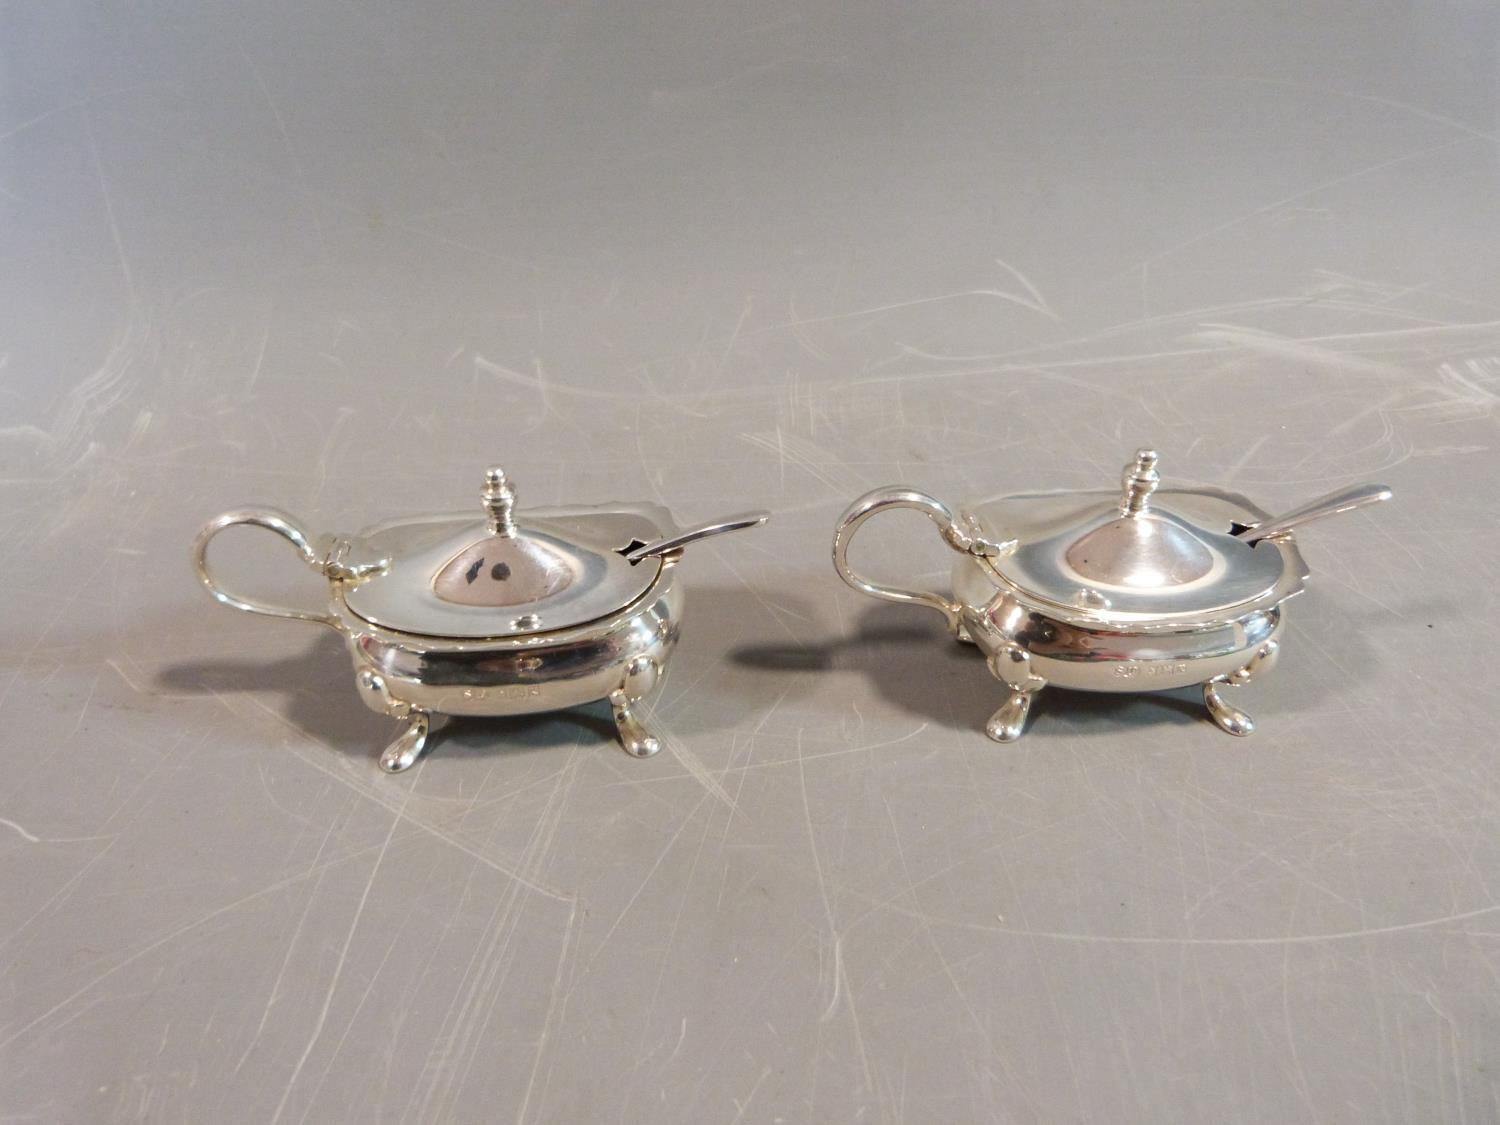 Silver cruets and salts and a pepper shaker. Hallmarked: SLd for William Suckling Ltd,1955, - Image 3 of 10